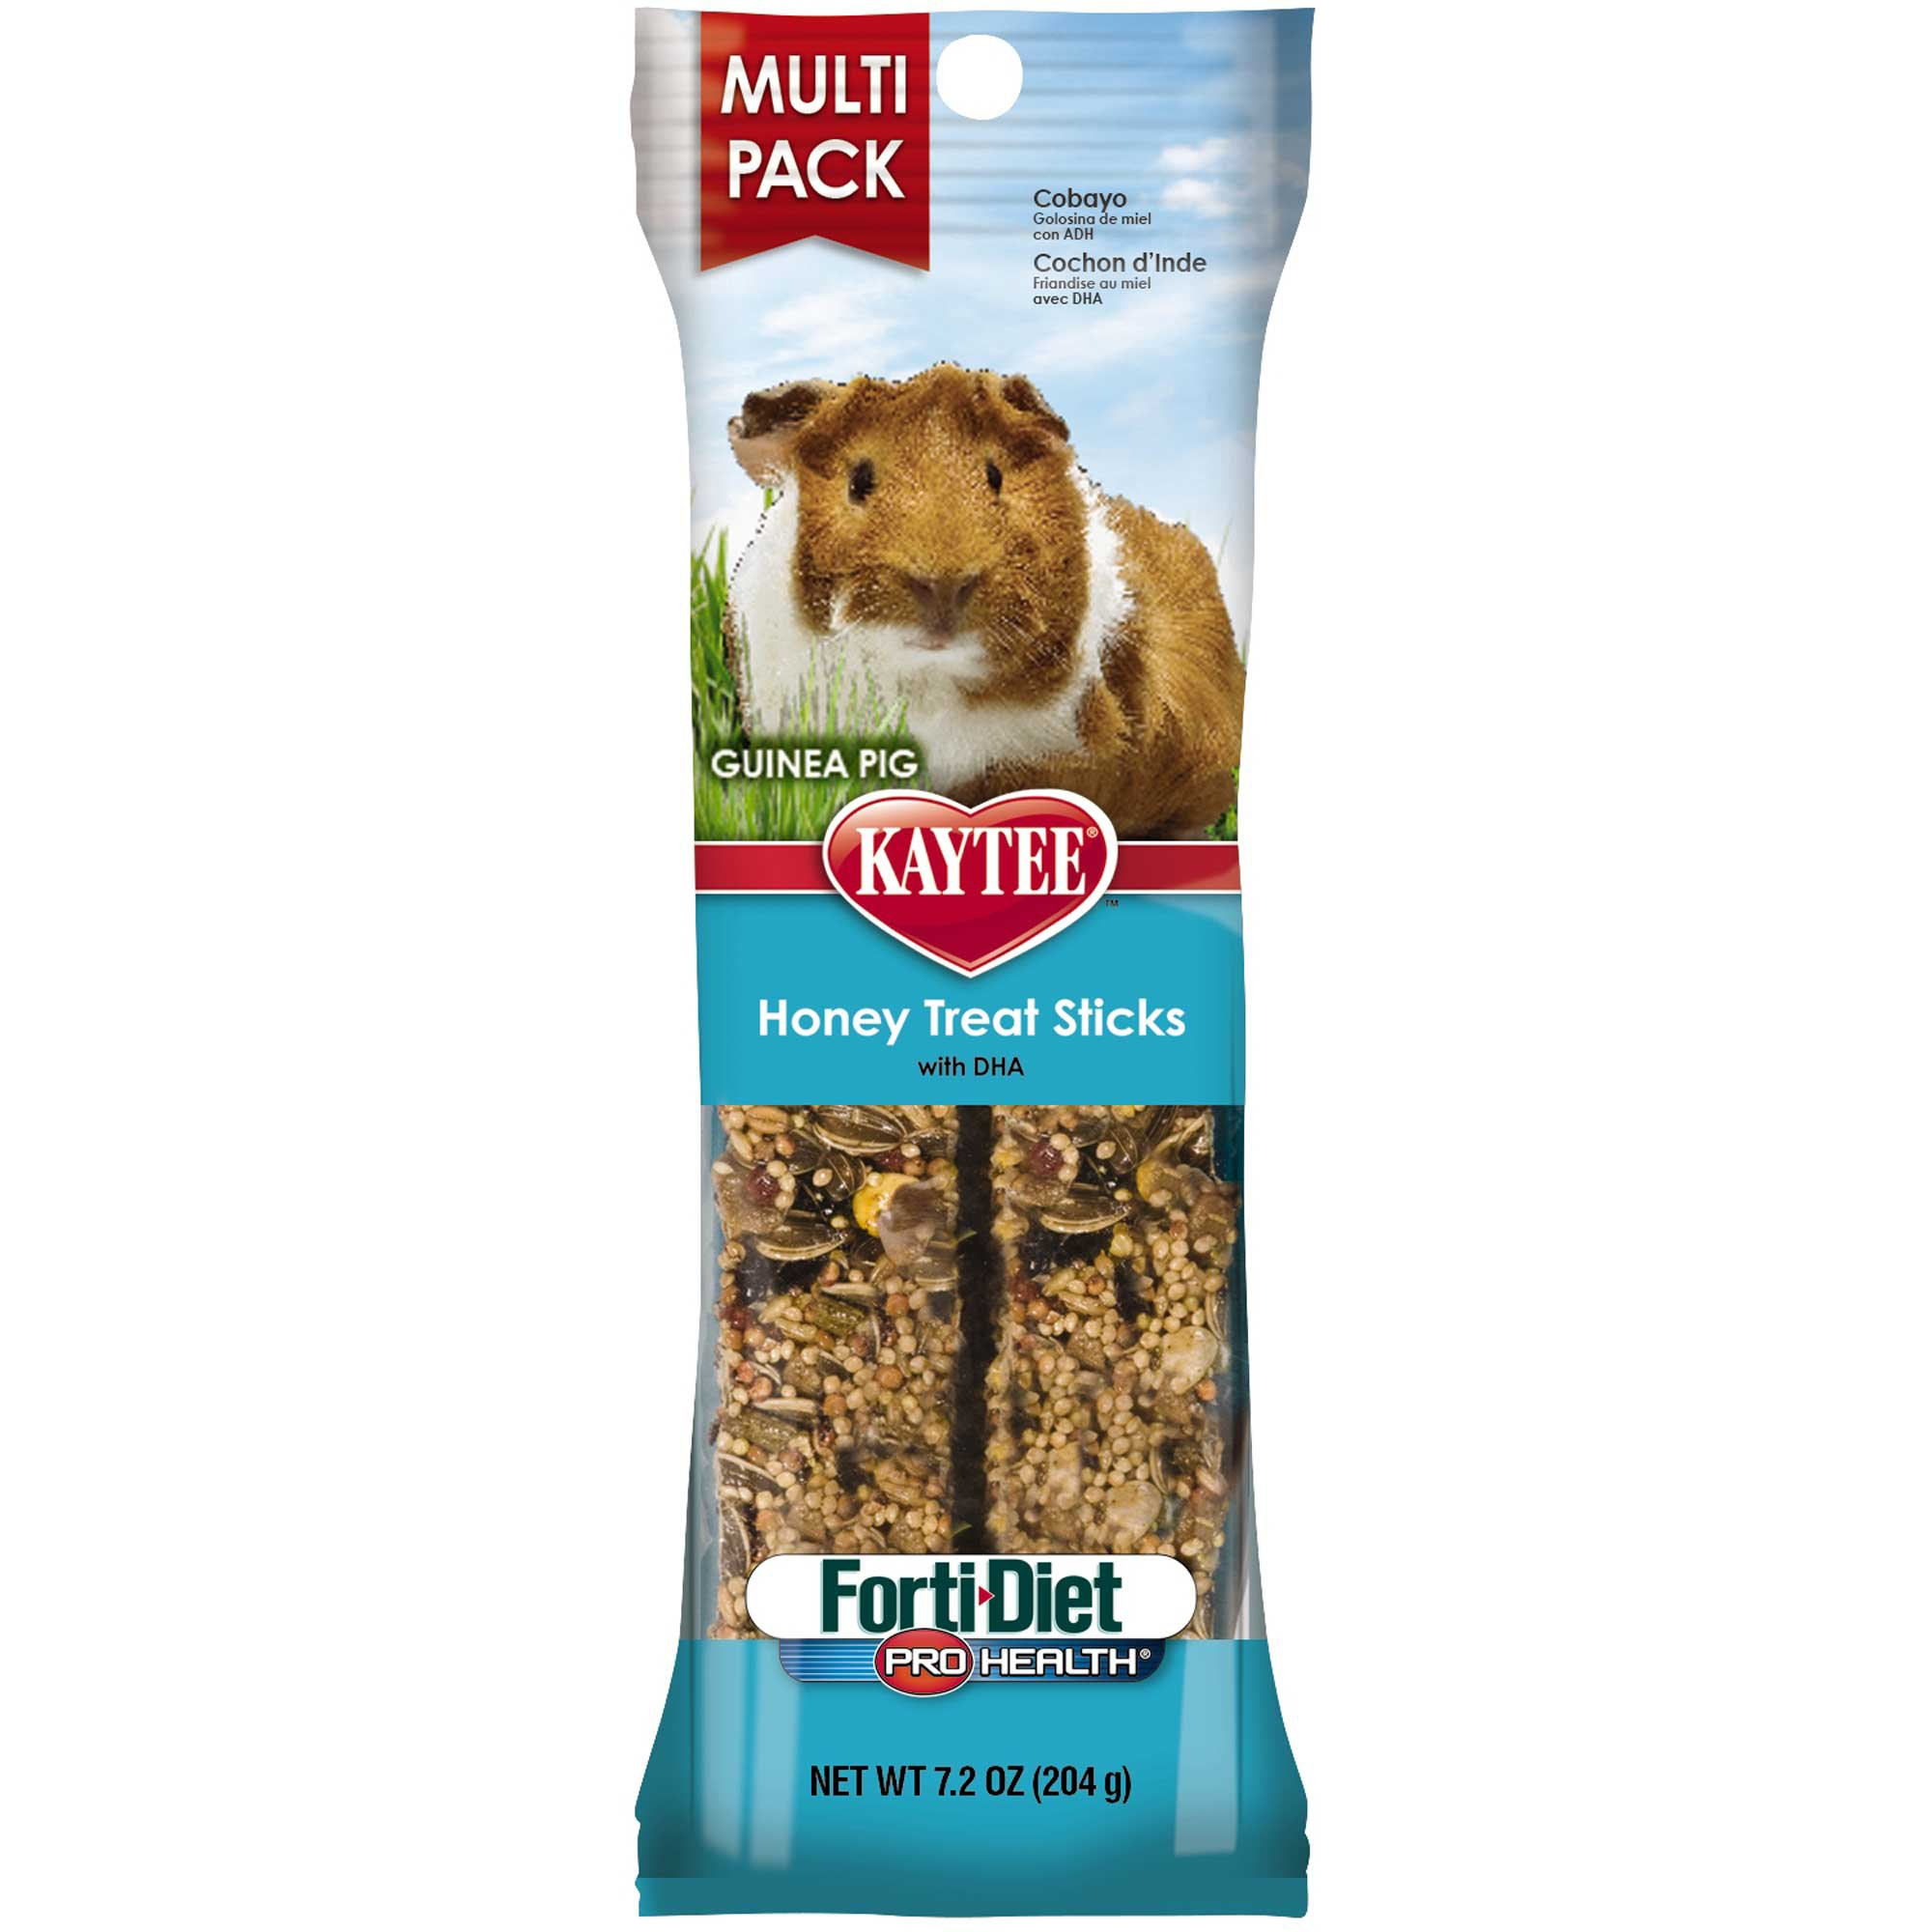 Kaytee forti diet pro health honey stick guinea pig treats for How to build a guinea pig house